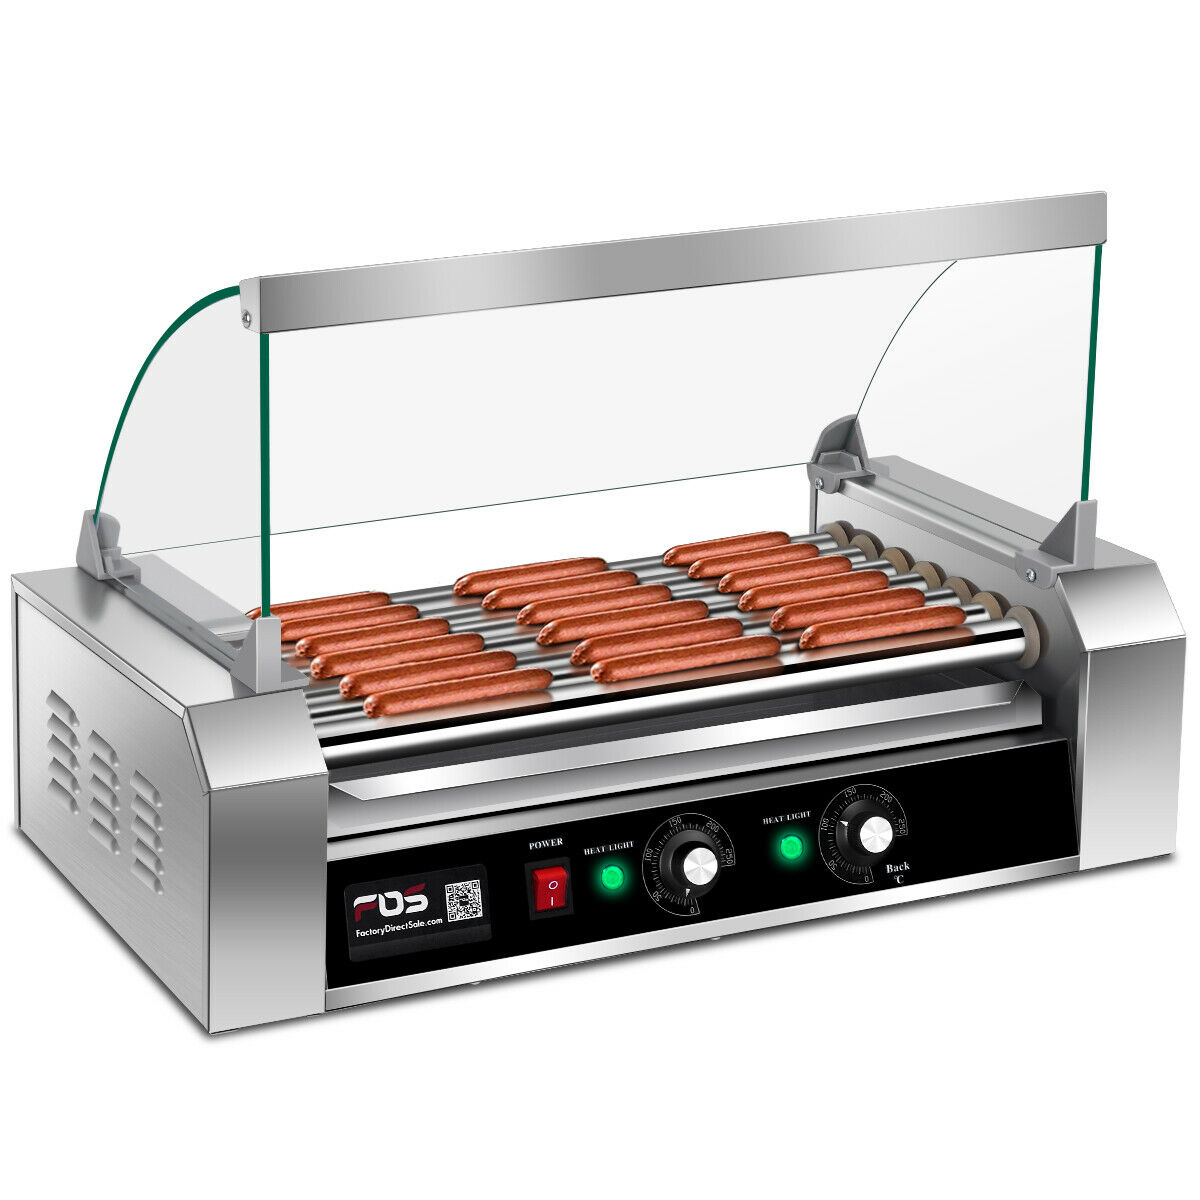 Costway Commercial 18/30 Hot Dog Hotdog 7/11 Roller Grill Cooker Machine w/ Cover (7 Roller Grill)